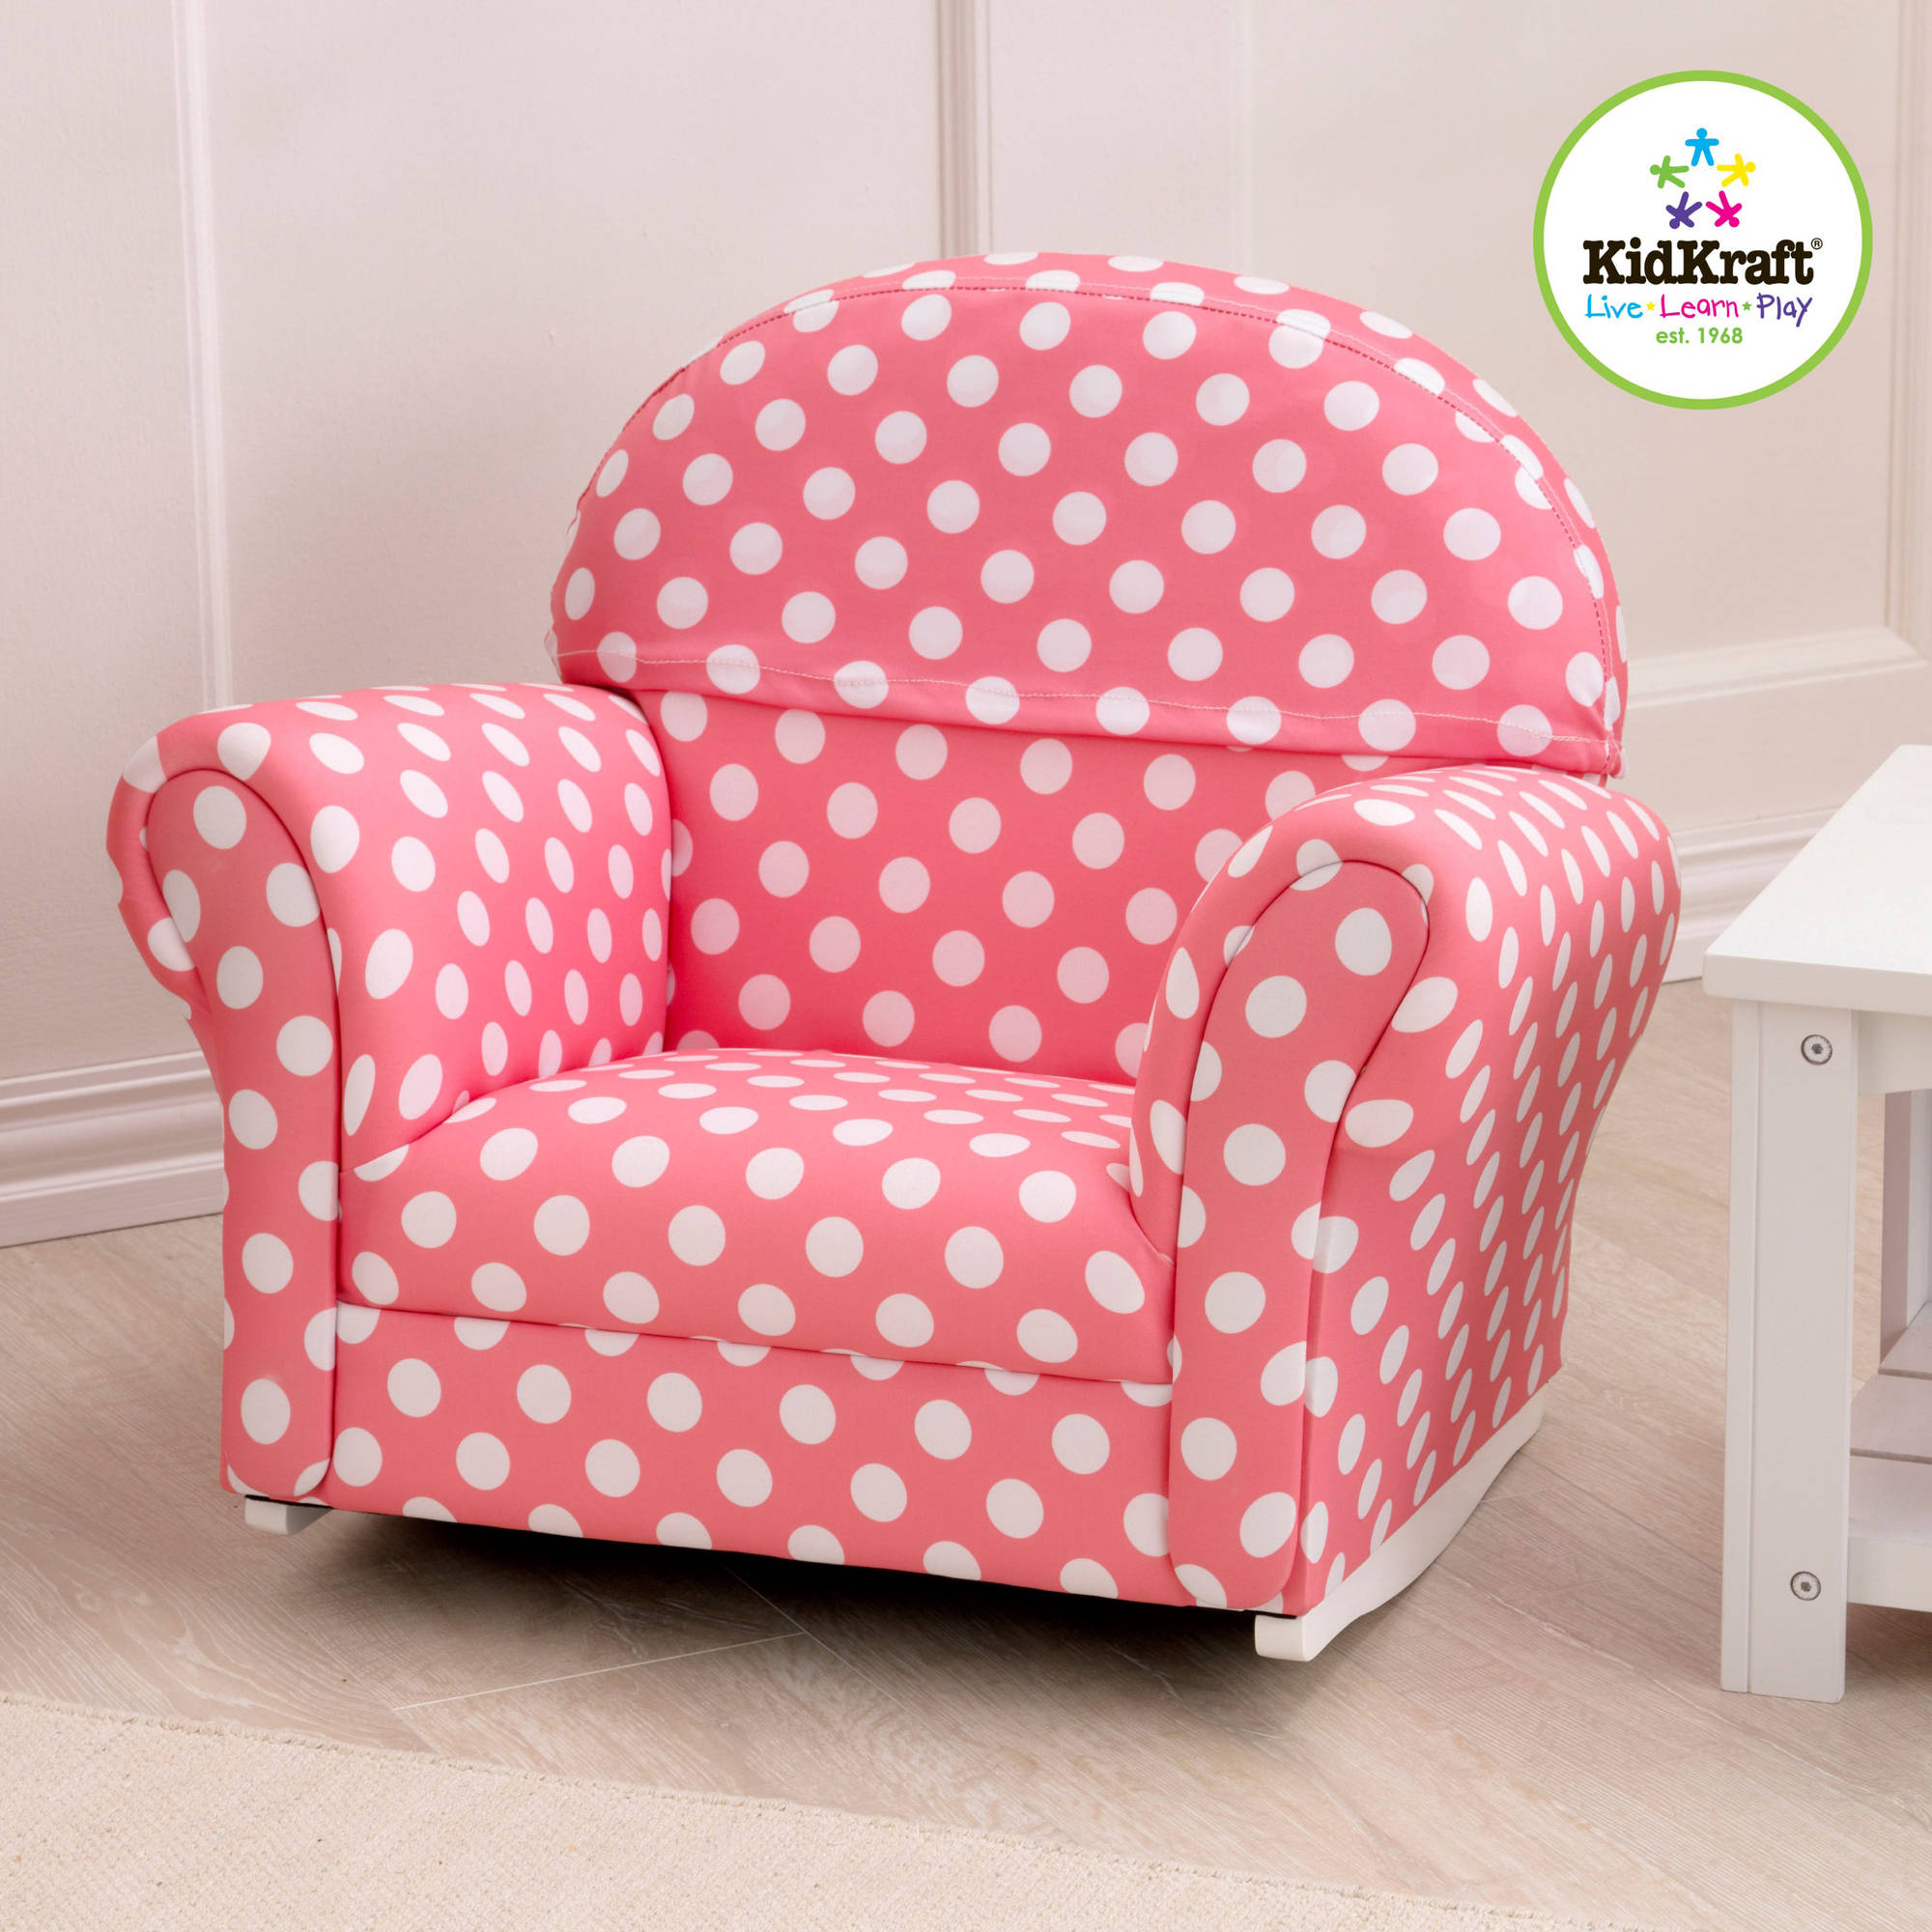 KidKraft Upholstered Rocker, Pink with Polka Dots